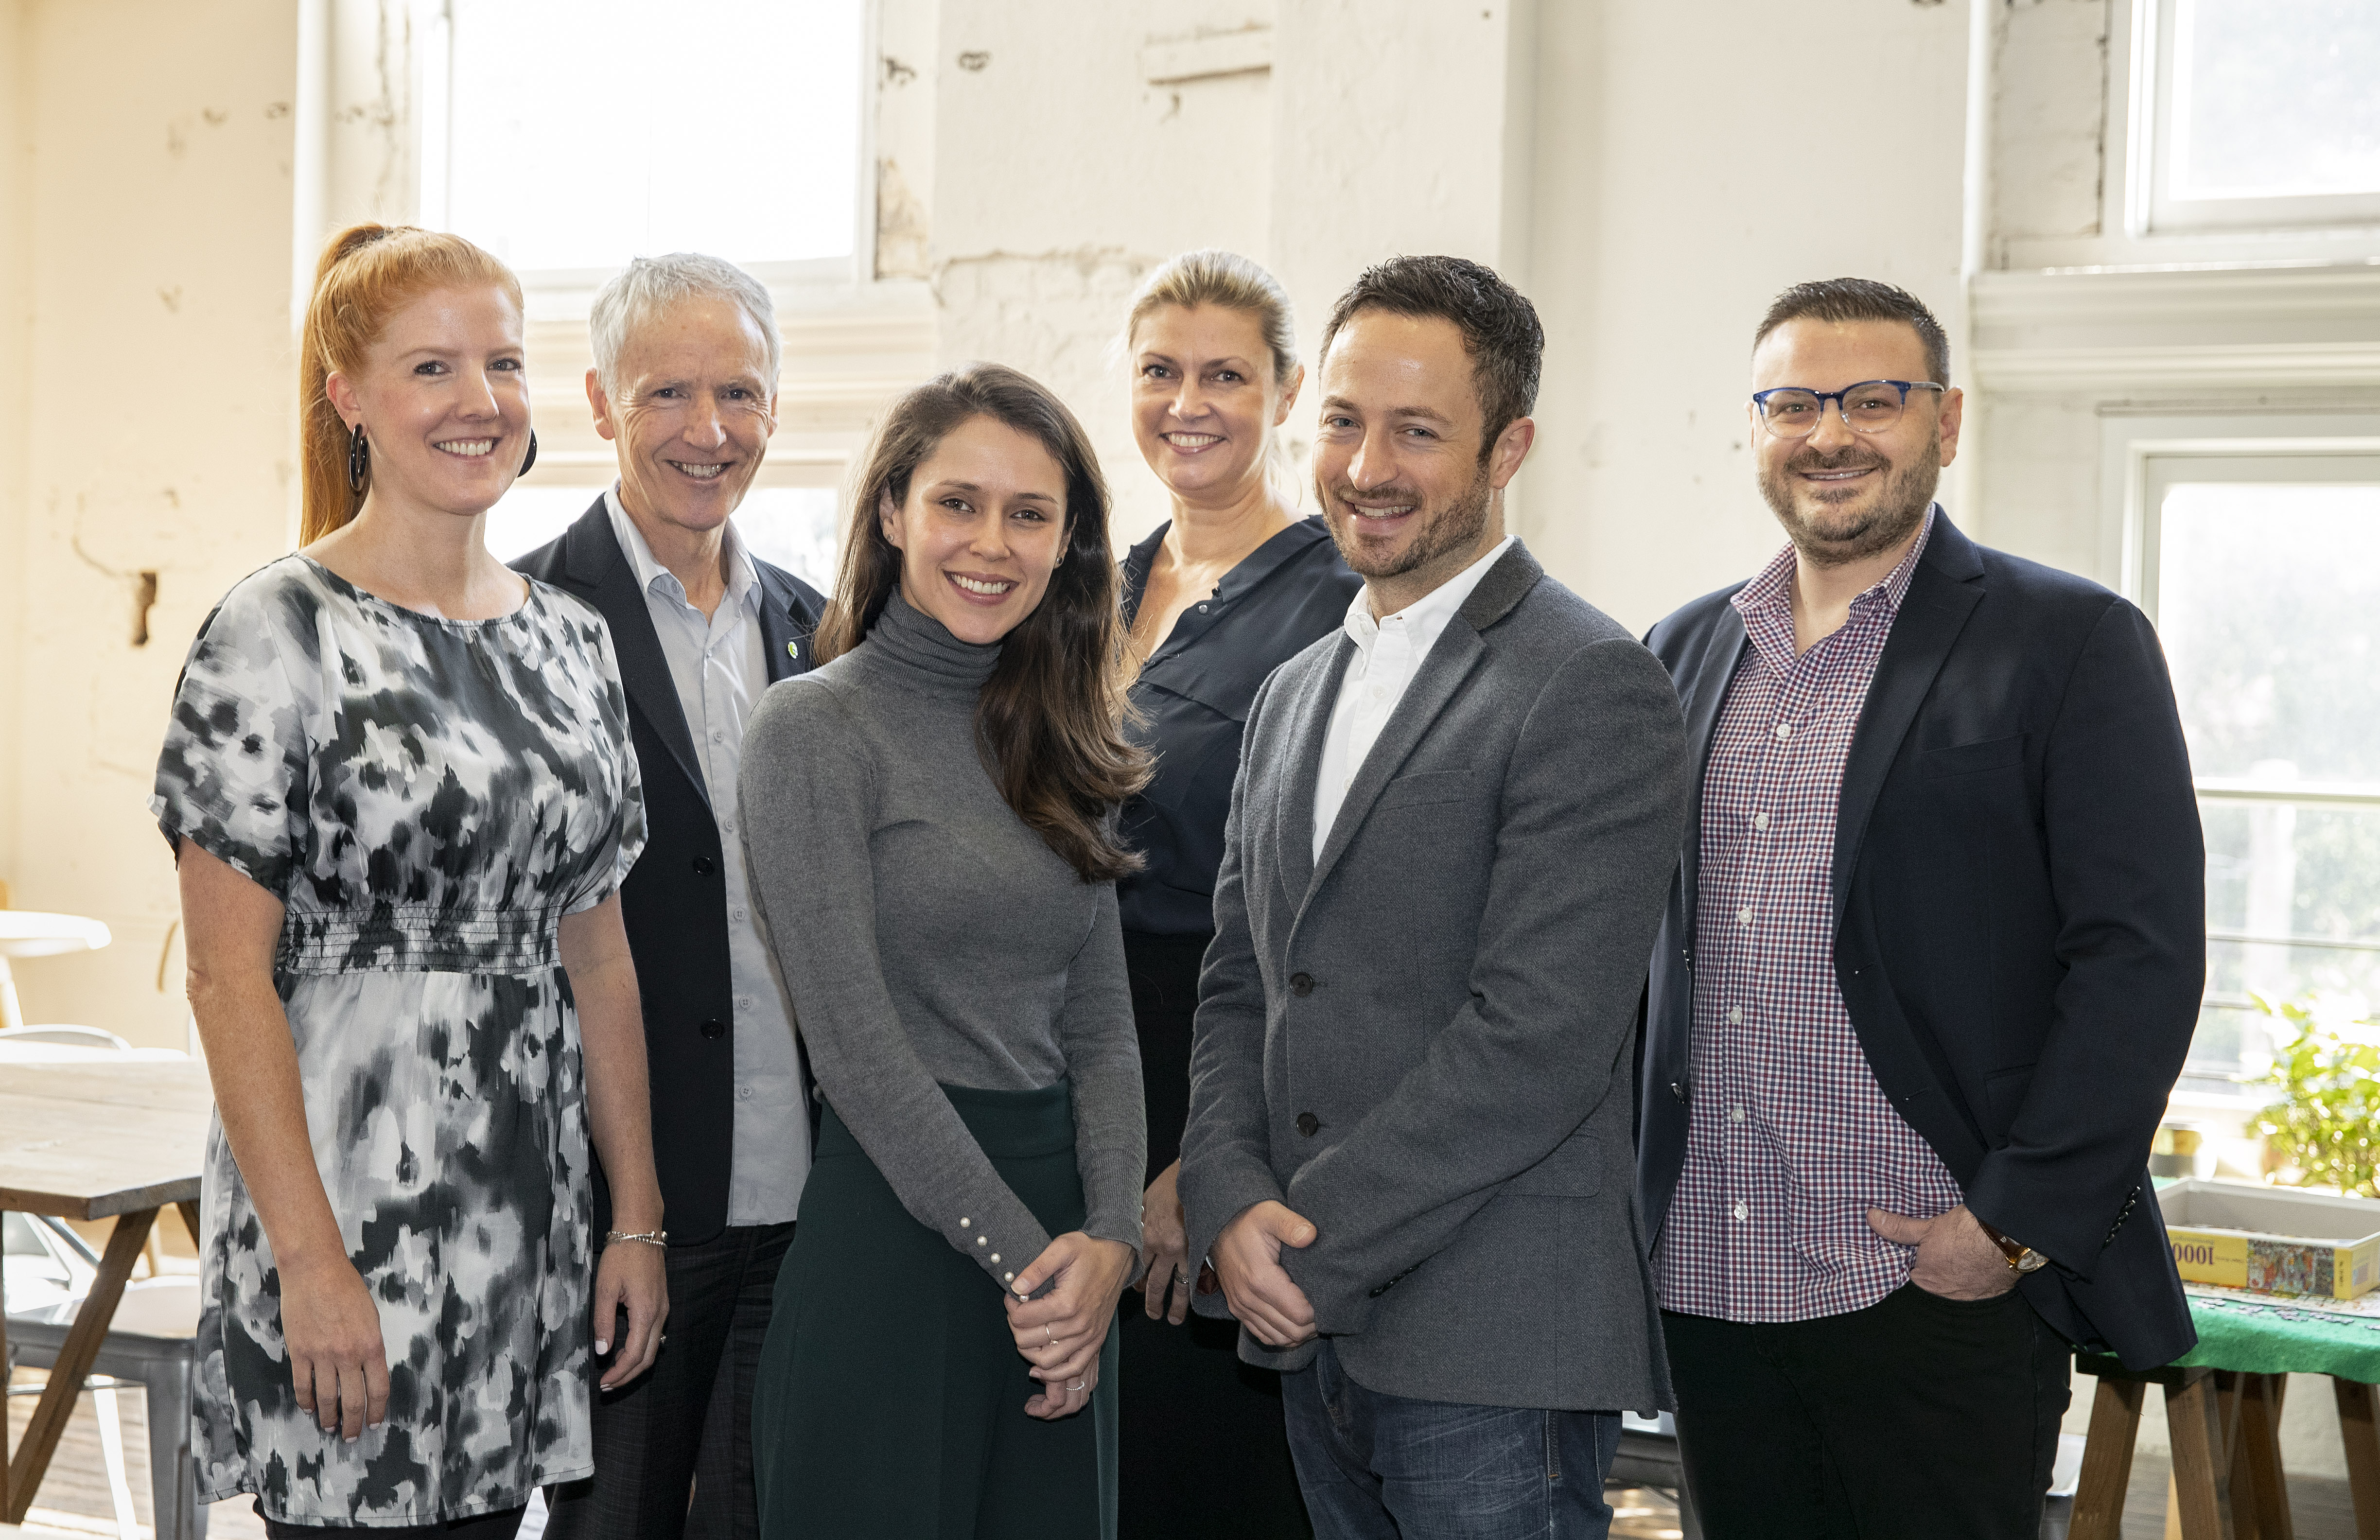 Canteen appoints Havas to develop integrated brand experience, strategy and marketing